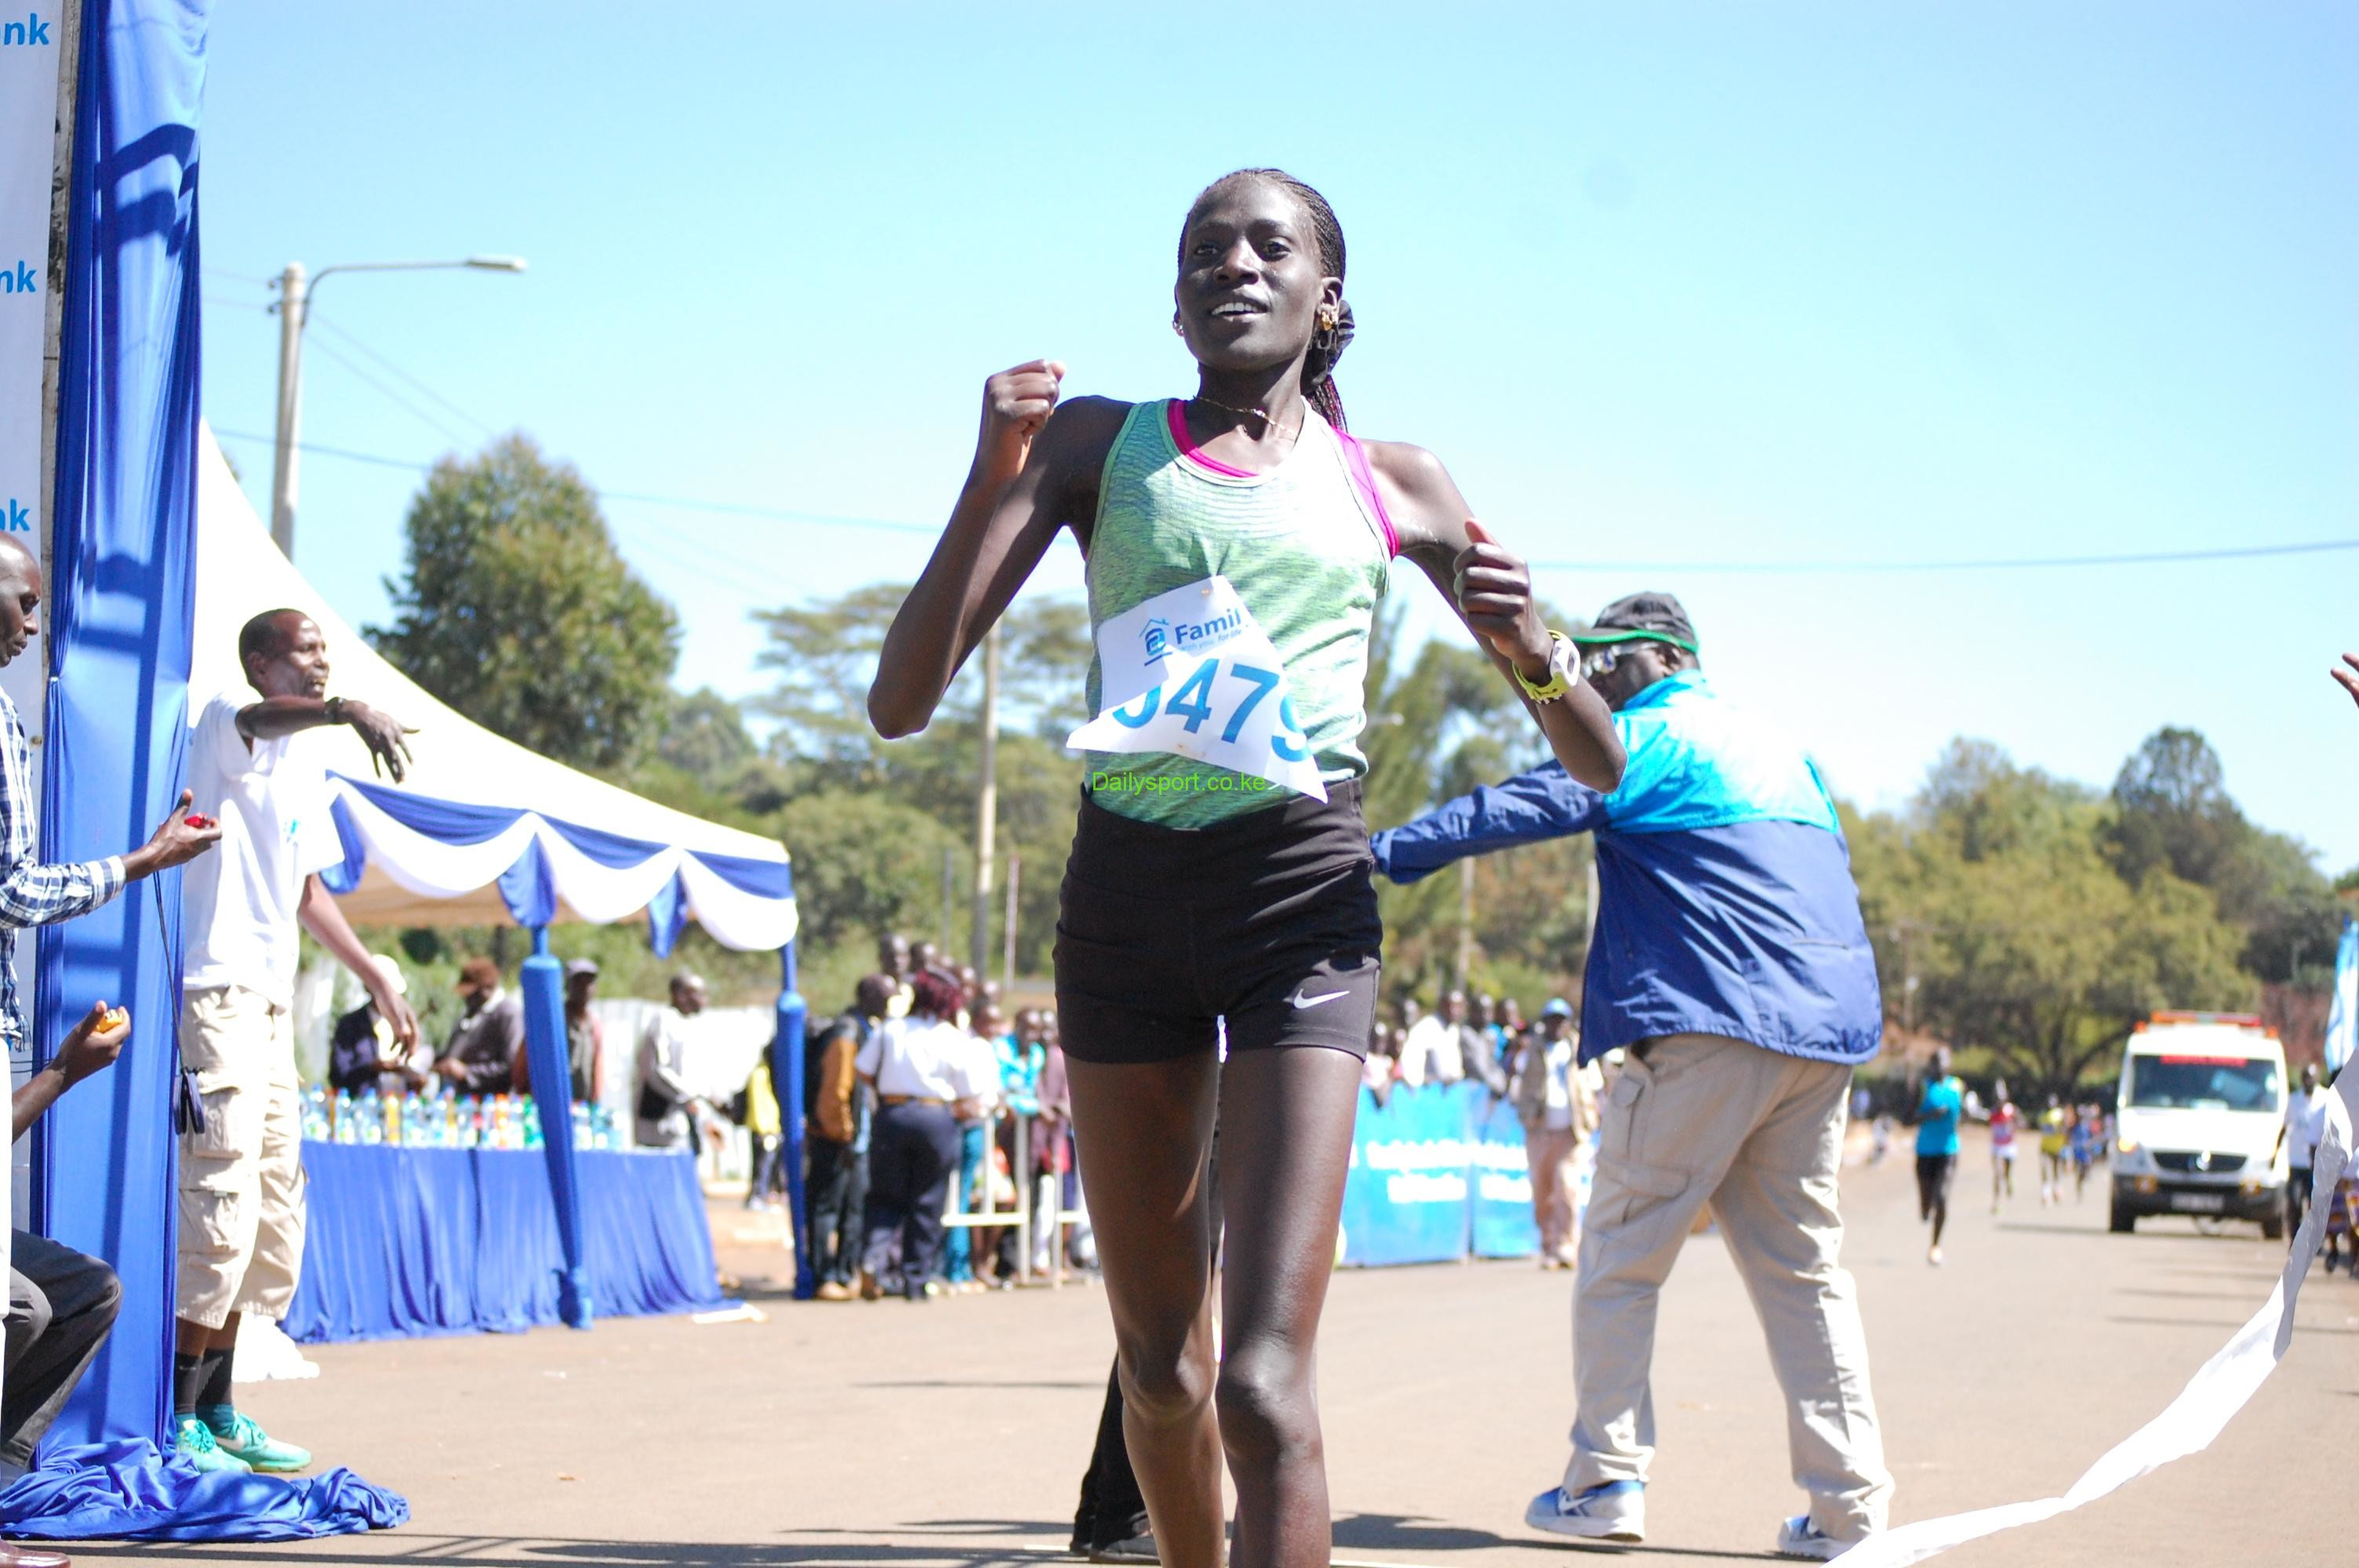 Kenyan runners are looking at running well again at the Valencia Half Marathon this weekend